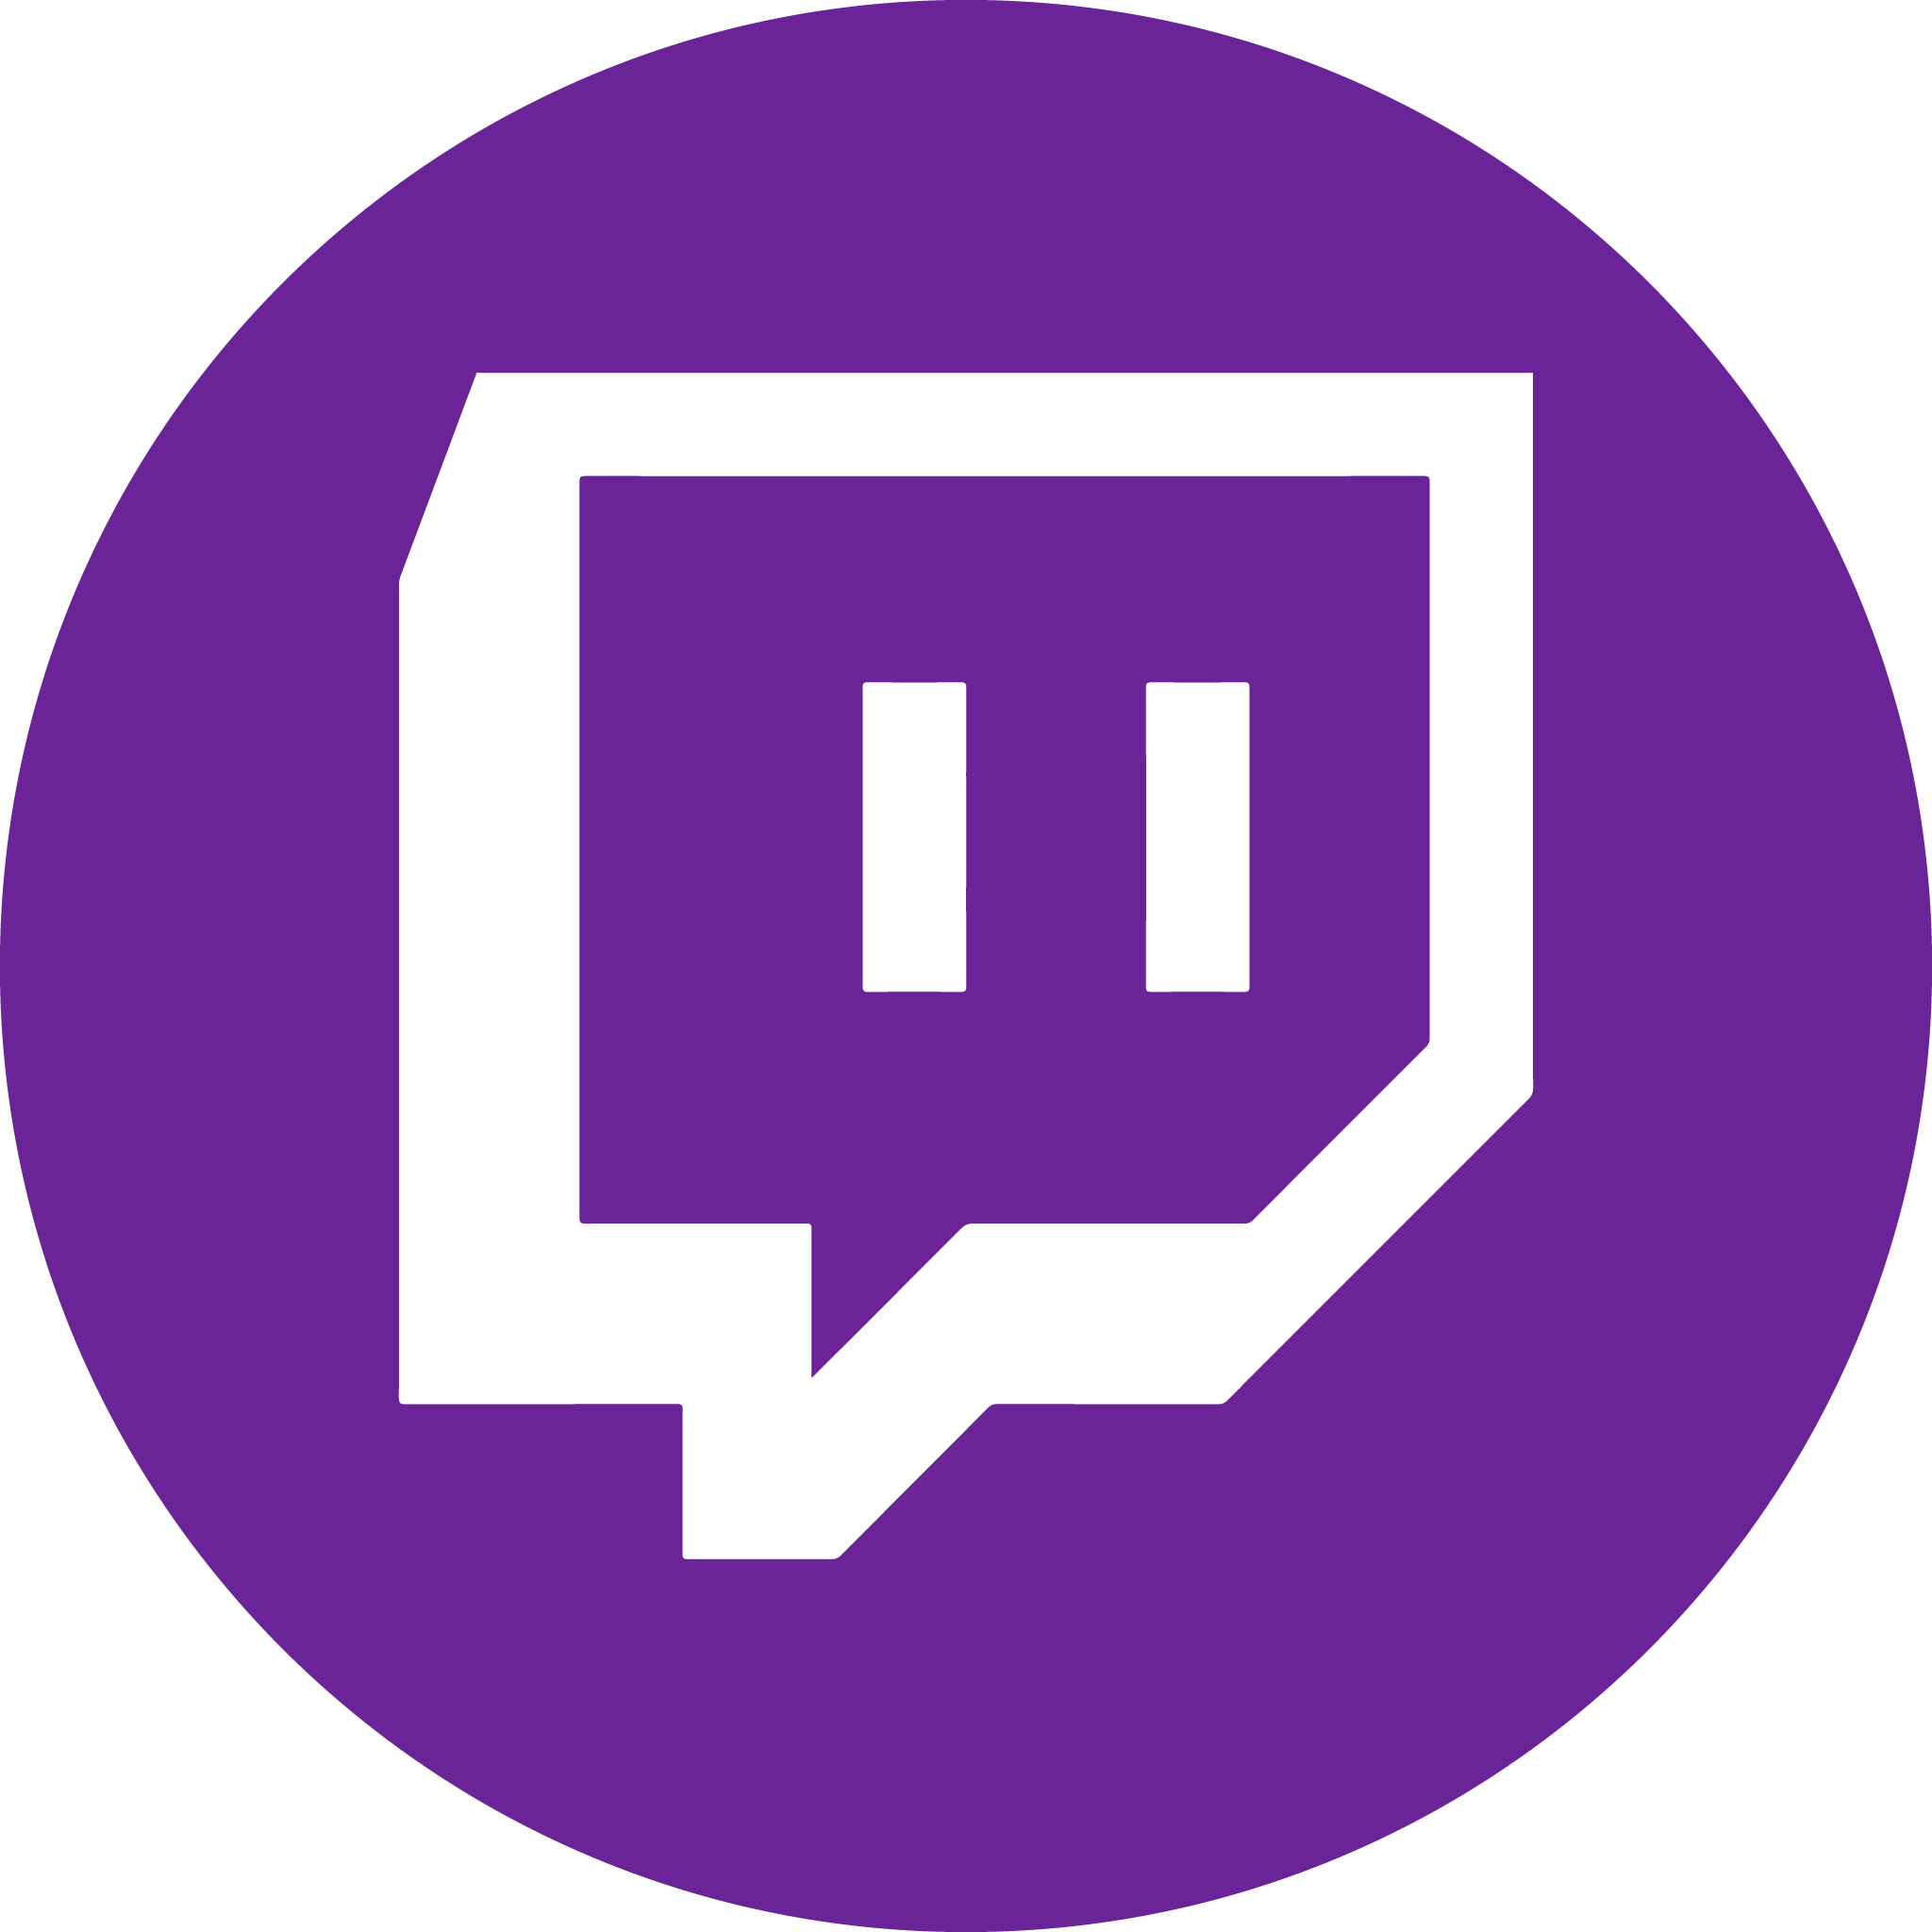 Twitch Logo Png Images Free Download - Twitch Logo PNG